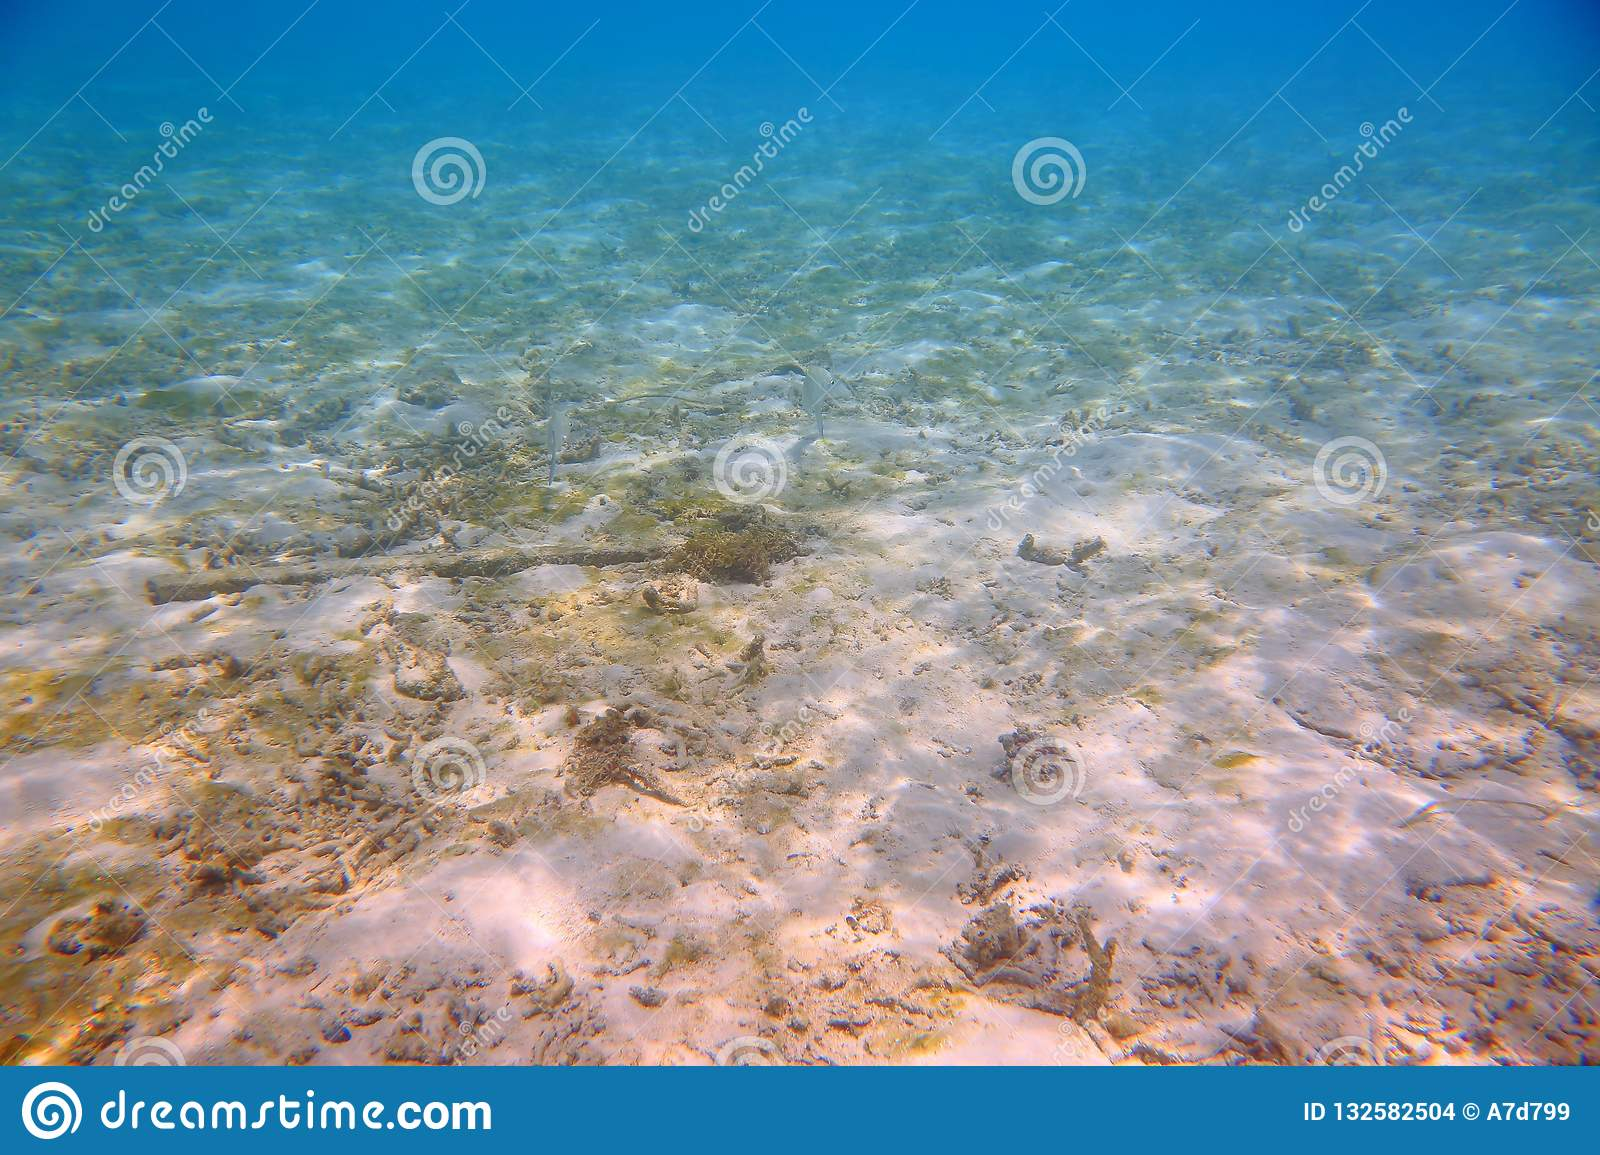 Beautiful abstract background / texture of underwater view of white sand bottom and blue water. Snorkling, Maldives,